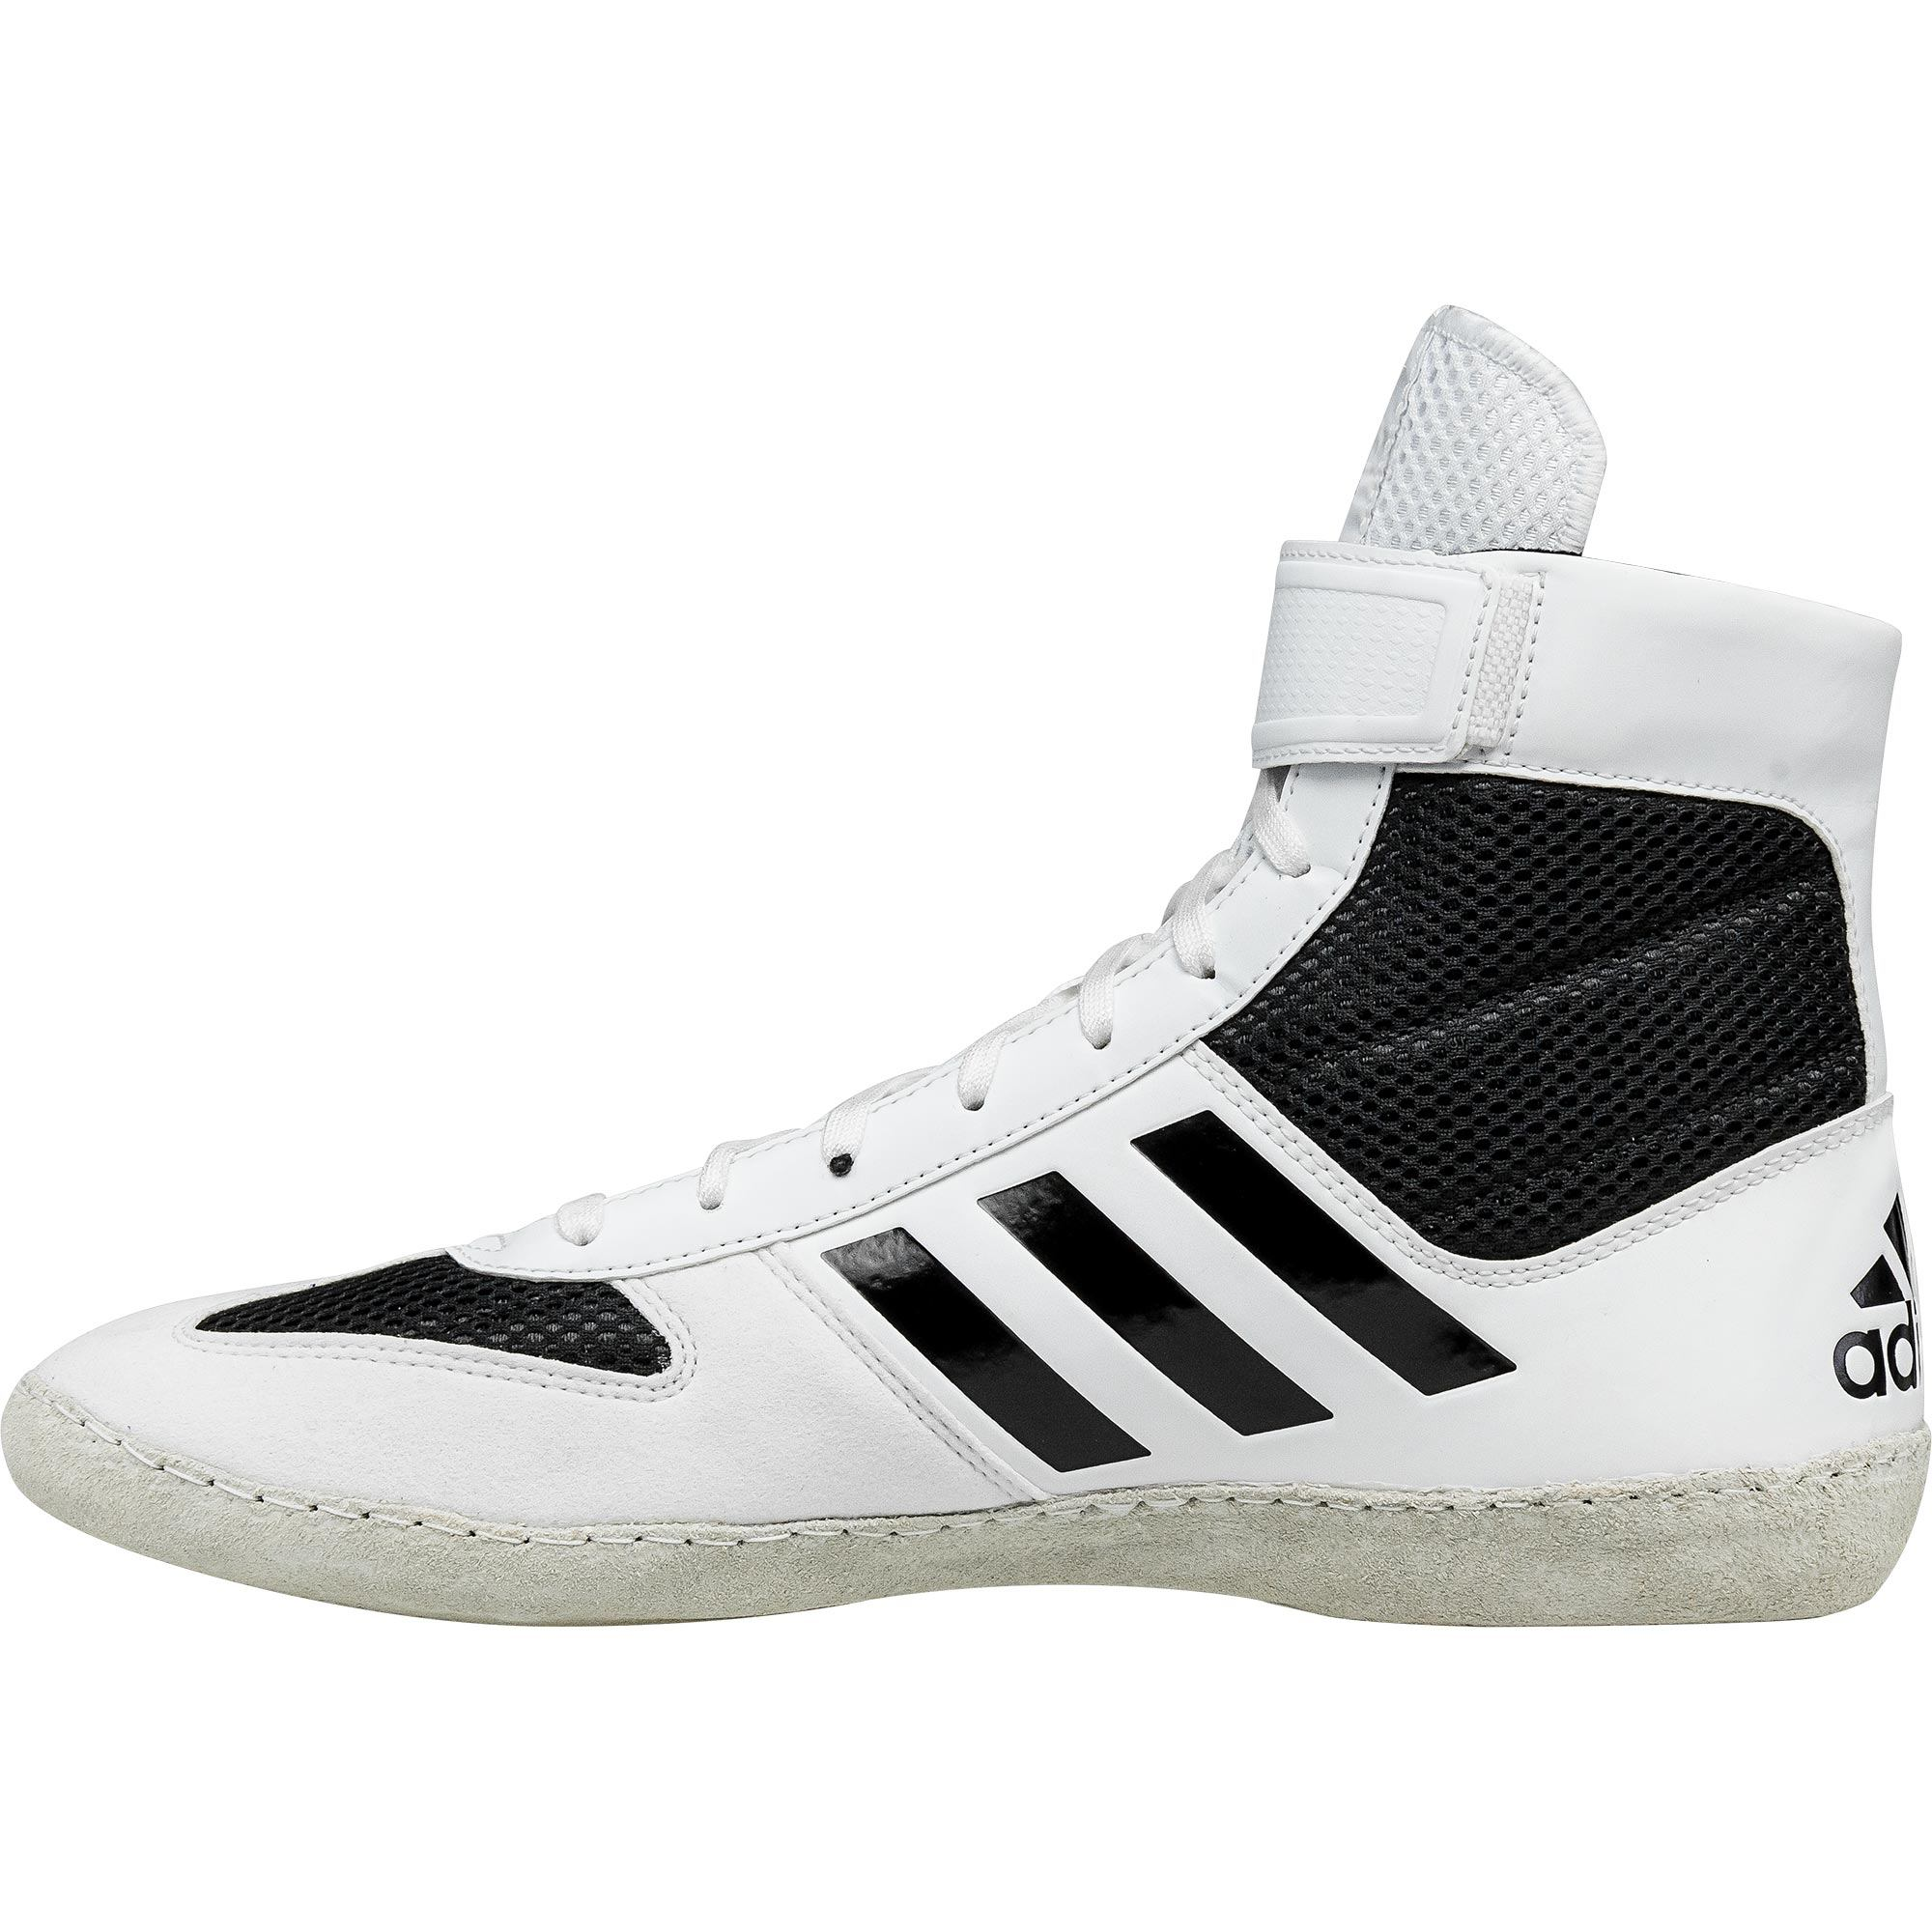 9d0a0662ec3b ... Comba Speed 5 White Black frontAdidas Comba Speed 5 White Black back Adidas Comba Speed 5 White Black soleAdidas Comba Speed 5 White Black top